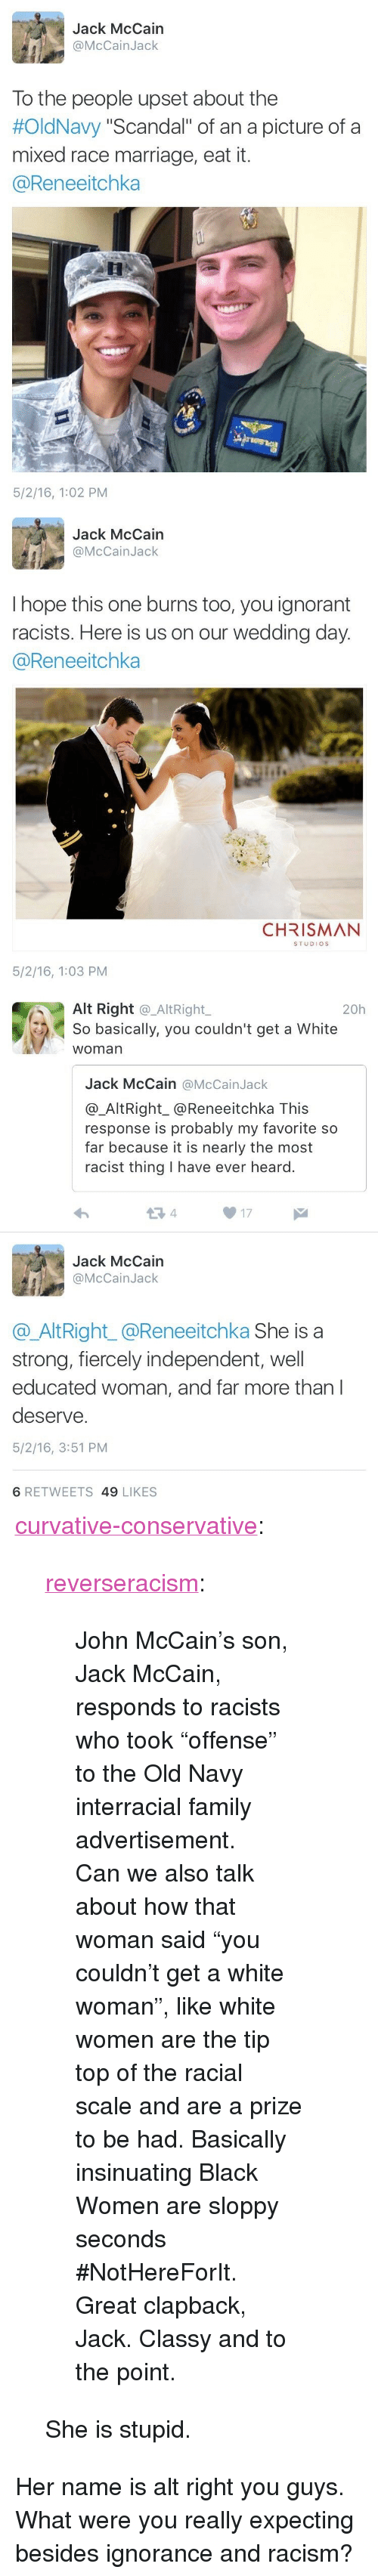 "Family, Ignorant, and Marriage: Jack McCain  @McCainJack  To the people upset about the  #OldNavy ""Scandal"" of an a picture of a  mixed race marriage, eat it.  @Reneeitchka  5/2/16, 1:02 PM   Jack McCain  @McCainJack  I hope this one burns too, you ignorant  racists. Here is us on our wedding day  @Reneeitchka  CHRISMAN  STUDIOS  5/2/16, 1:03 PM   Alt Right @_AltRight,  So basically, you couldn't get a White  woman  20h  Jack McCain @McCainJack  @_AltRight_@Reneeitchka This  response is probably my favorite so  far because it is nearly the most  racist thing I have ever heard.  13 4  17  Jack McCain  @McCainJack  @AltRight_@Reneeitchka She is a  strong, fiercely independent, well  educated woman, and far more than l  deserve.  5/2/16, 3:51 PM  6 RETWEETS 49 LIKES <p><a class=""tumblr_blog"" href=""http://curvative-conservative.tumblr.com/post/144360719358"">curvative-conservative</a>:</p> <blockquote> <p><a class=""tumblr_blog"" href=""http://reverseracism.tumblr.com/post/143805626093"">reverseracism</a>:</p> <blockquote> <p>John McCain's son, Jack McCain, responds to racists who took ""offense"" to the Old Navy interracial family advertisement. </p>  <p>Can we also talk about how that woman said ""you couldn't get a white woman"", like white women are the tip top of the racial scale and are a prize to be had. Basically insinuating Black Women are sloppy seconds #NotHereForIt. Great clapback, Jack. Classy and to the point.</p> </blockquote> <p>She is stupid.</p> </blockquote>  <p>Her name is alt right you guys. What were you really expecting besides ignorance and racism?</p>"